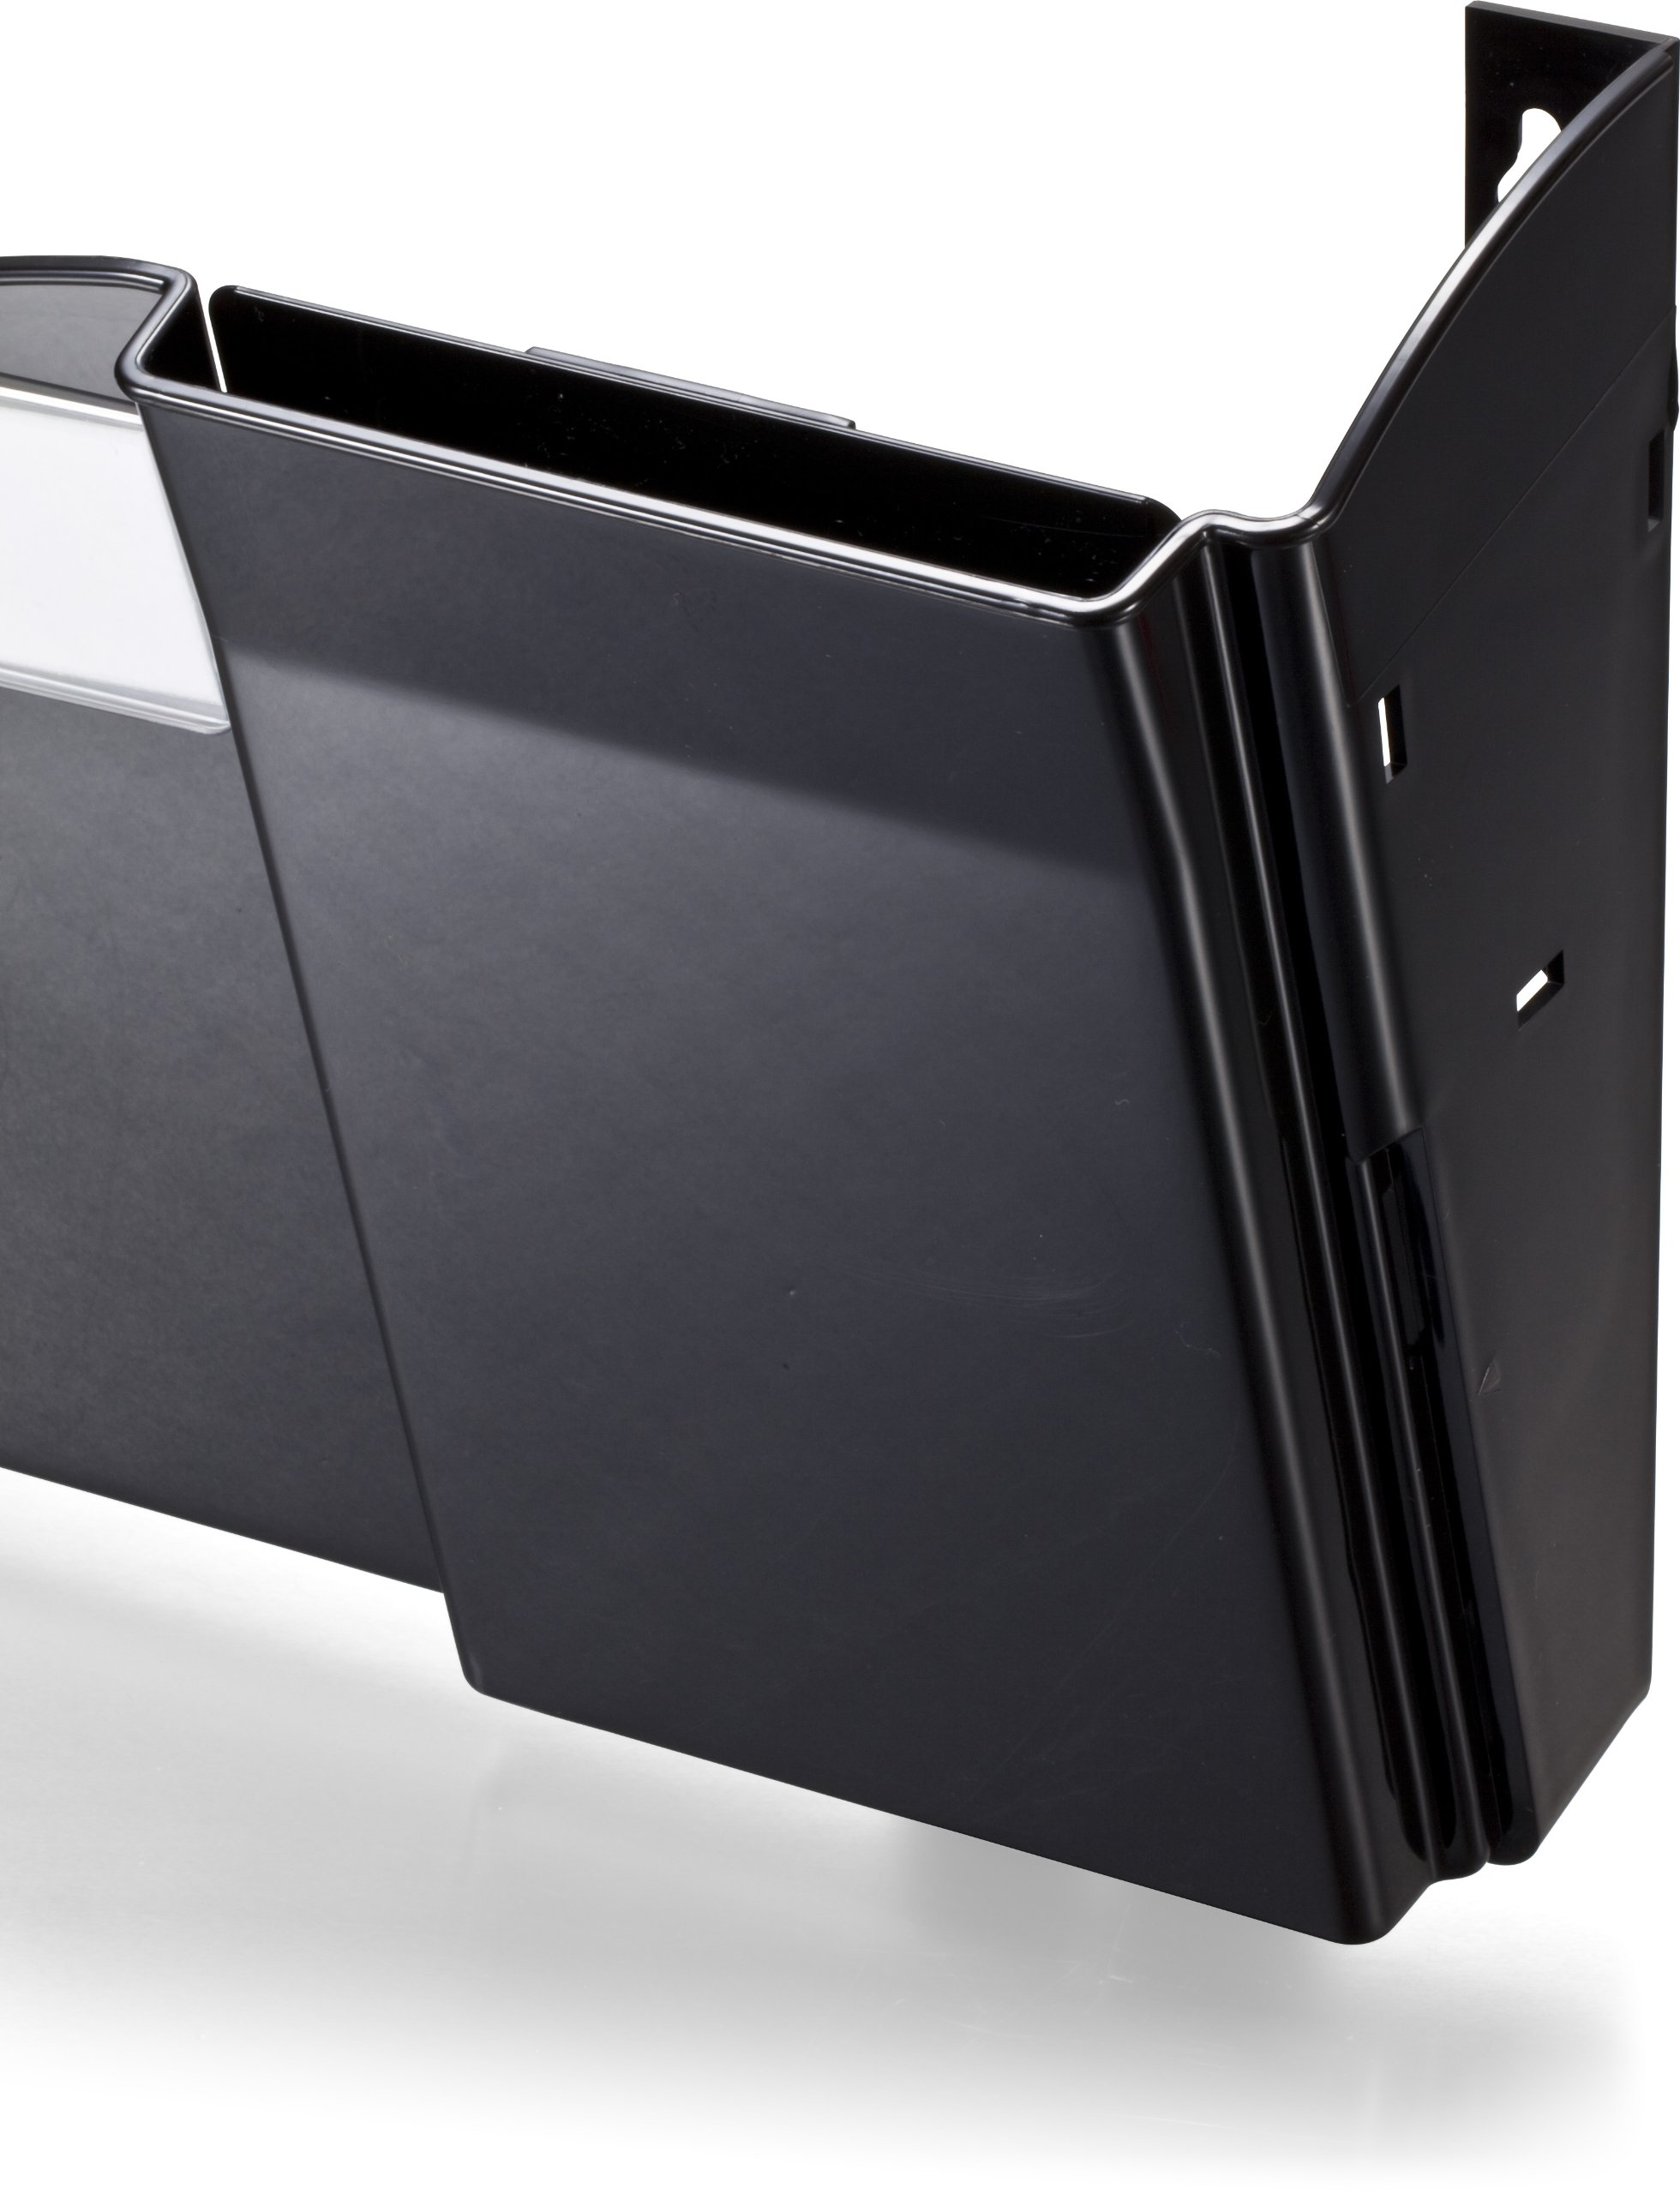 Officemate Grande Centrale Filing System, 4 Pockets, Black (21728) by Officemate